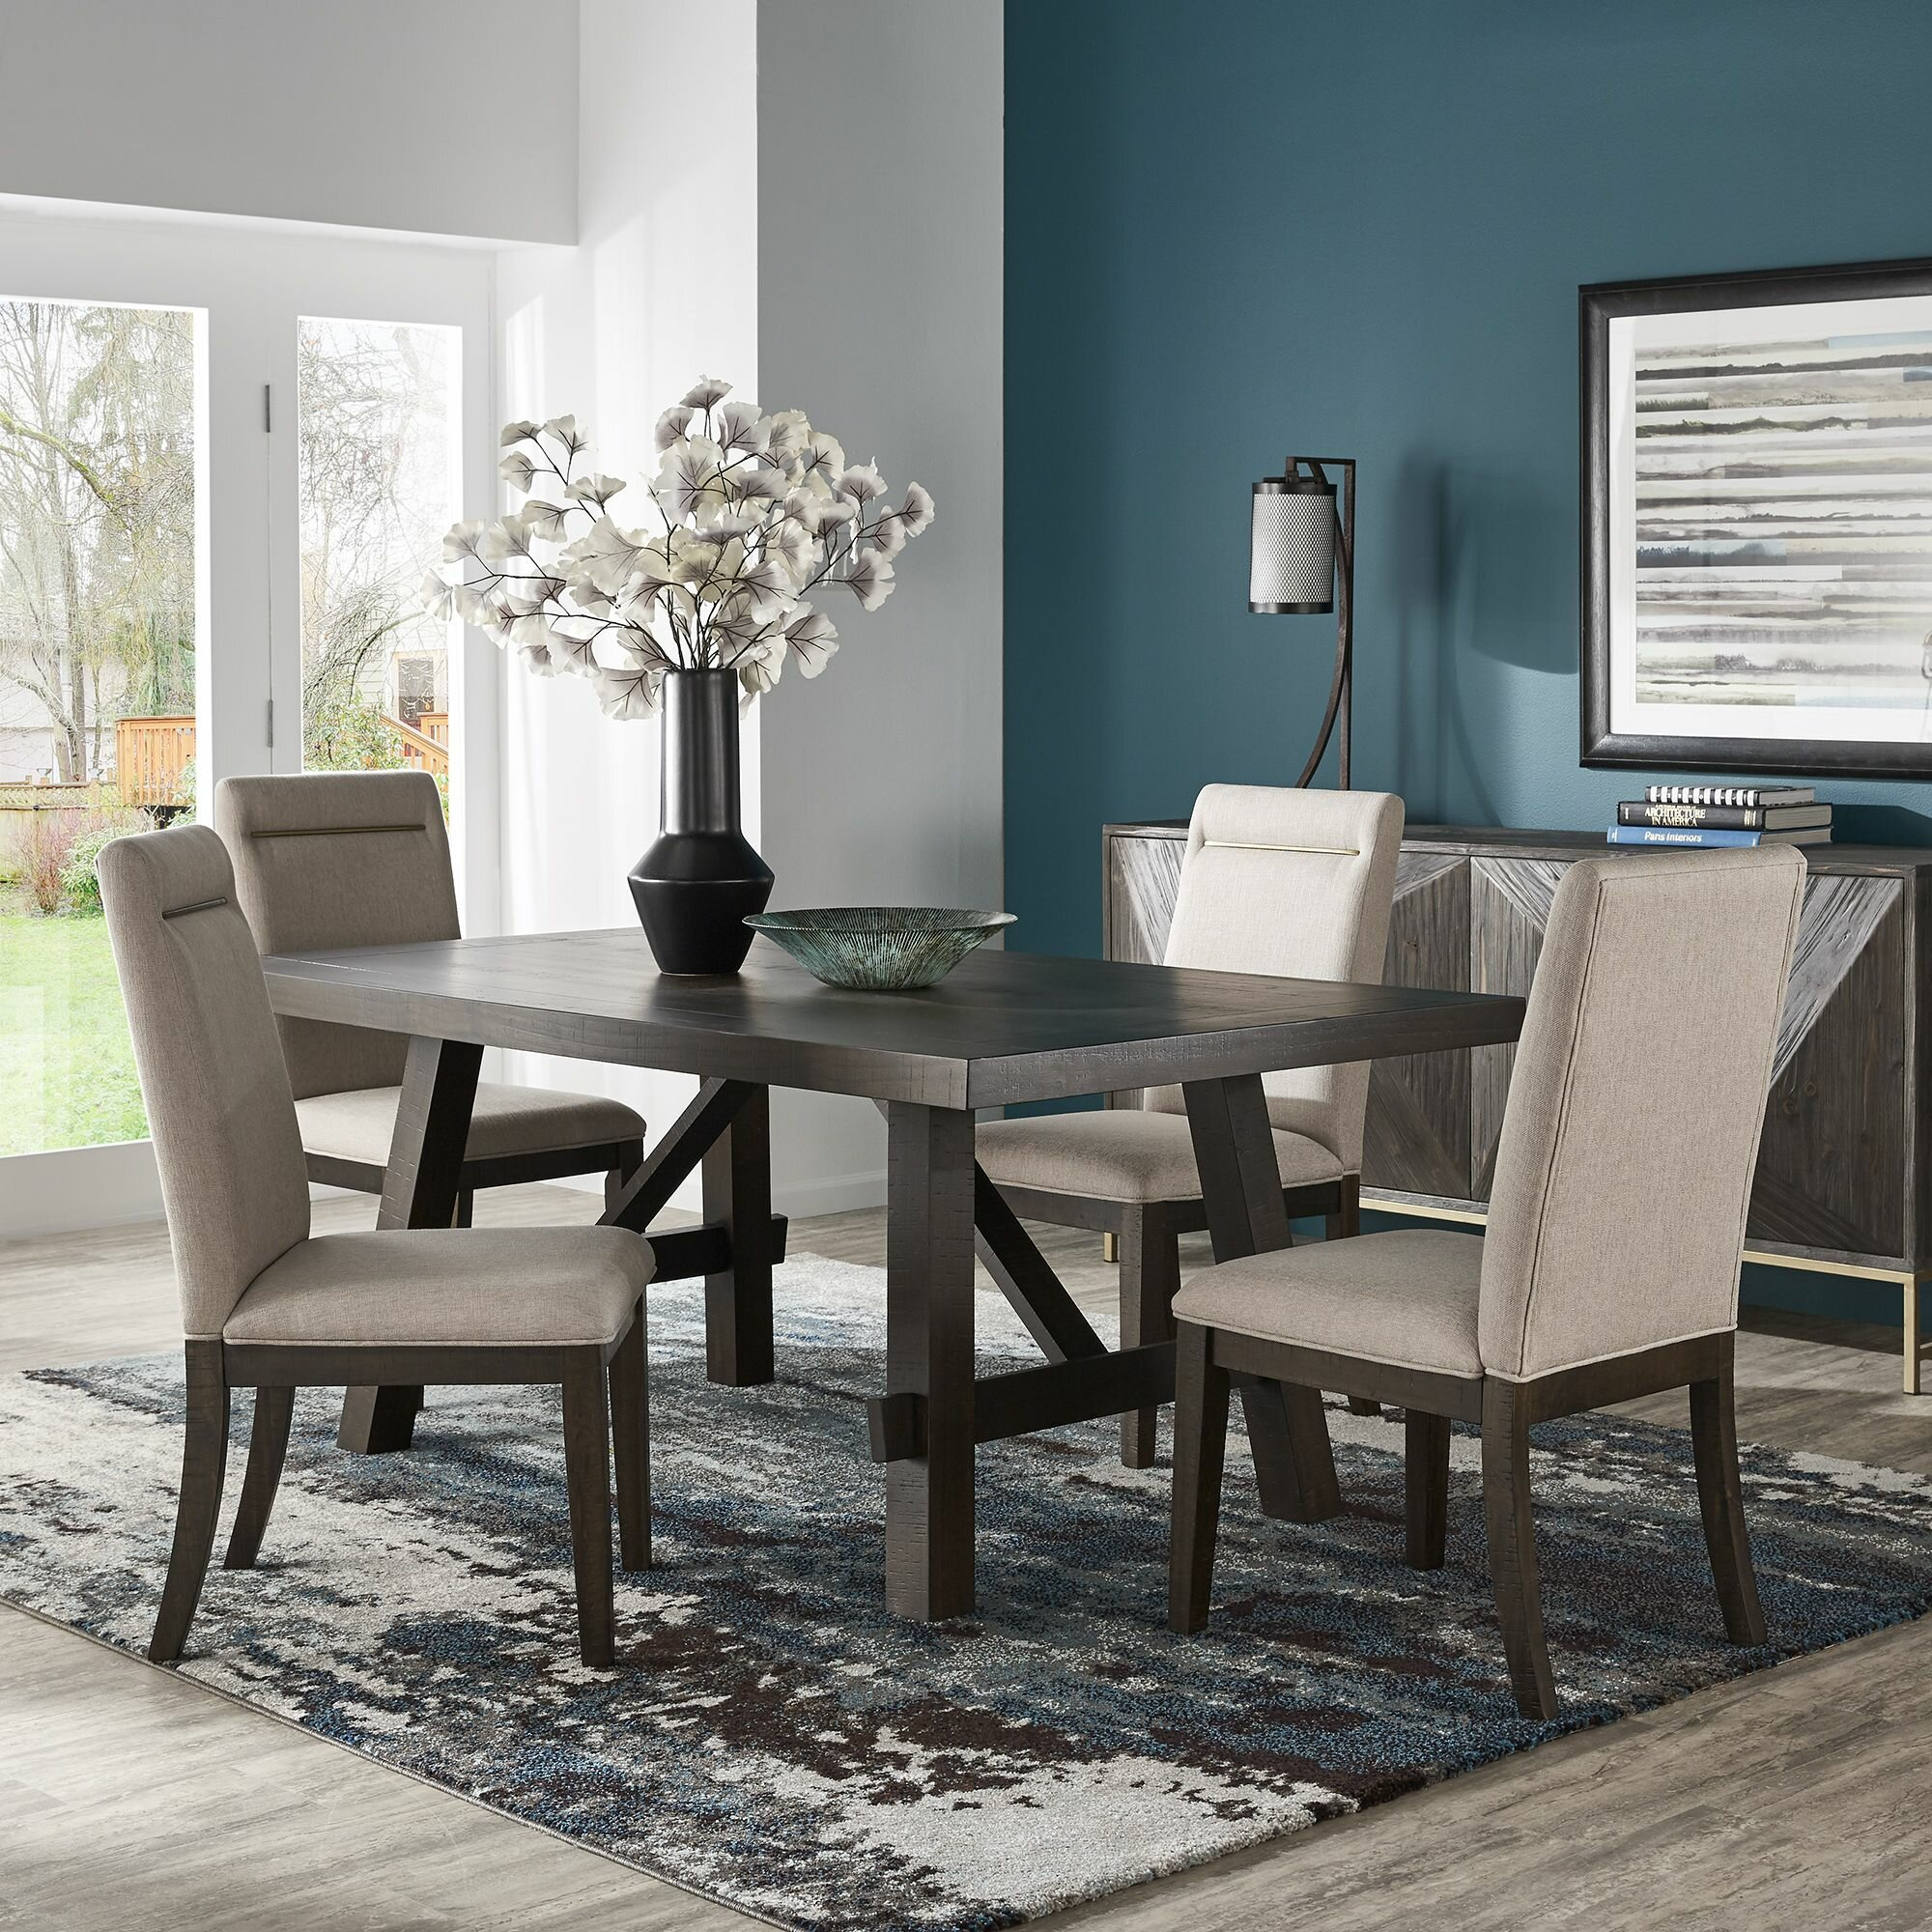 Gracie Oaks Labbe 5 Piece Dining Table